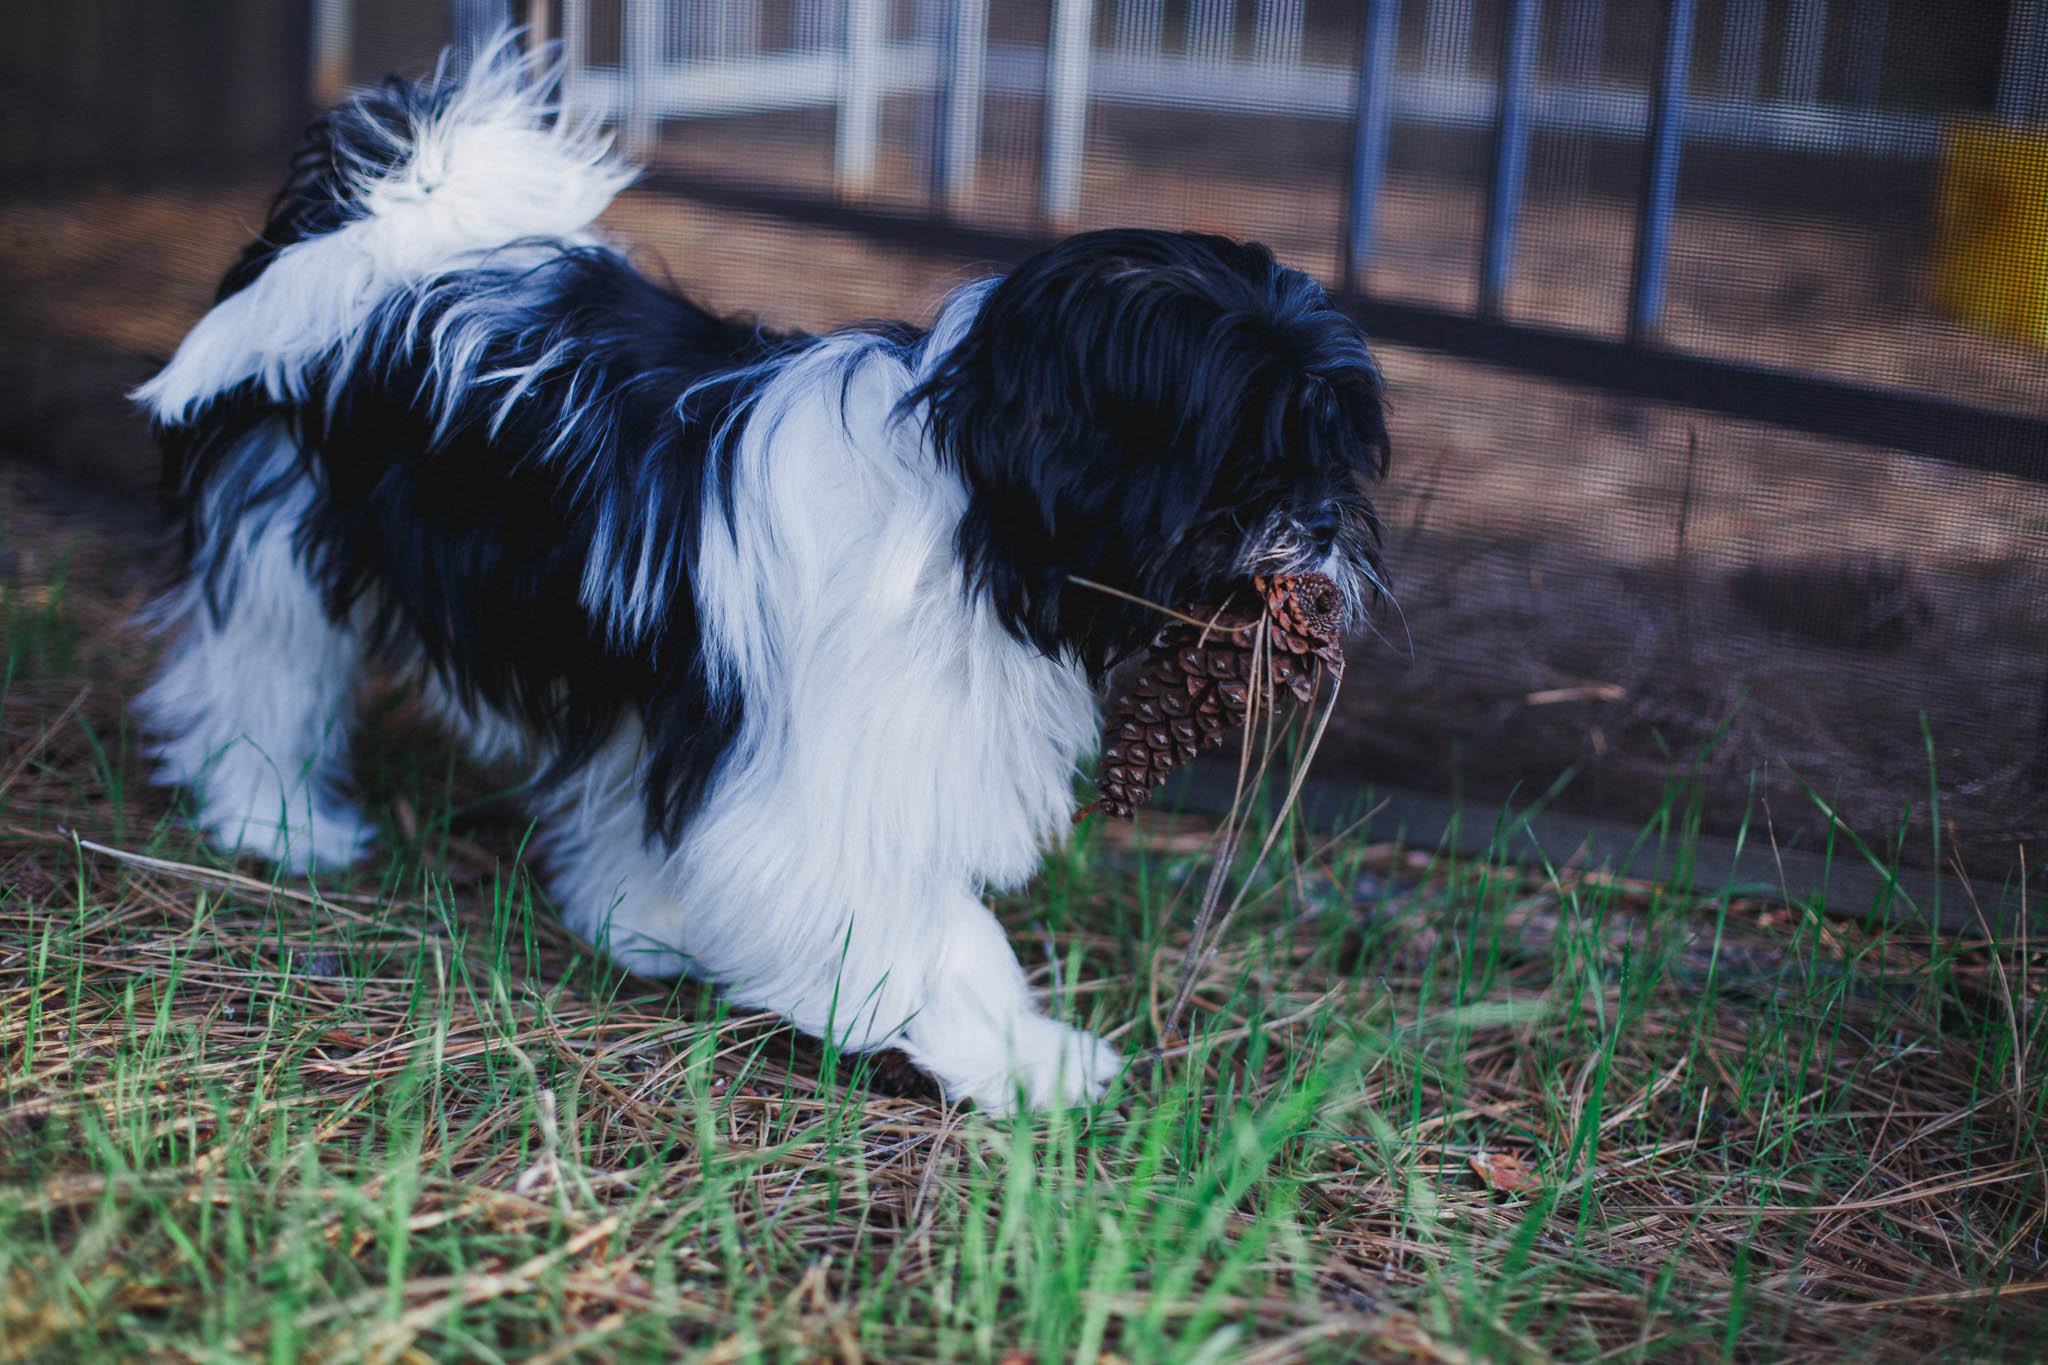 Lhasa Apso Puppy carrying a pine cone